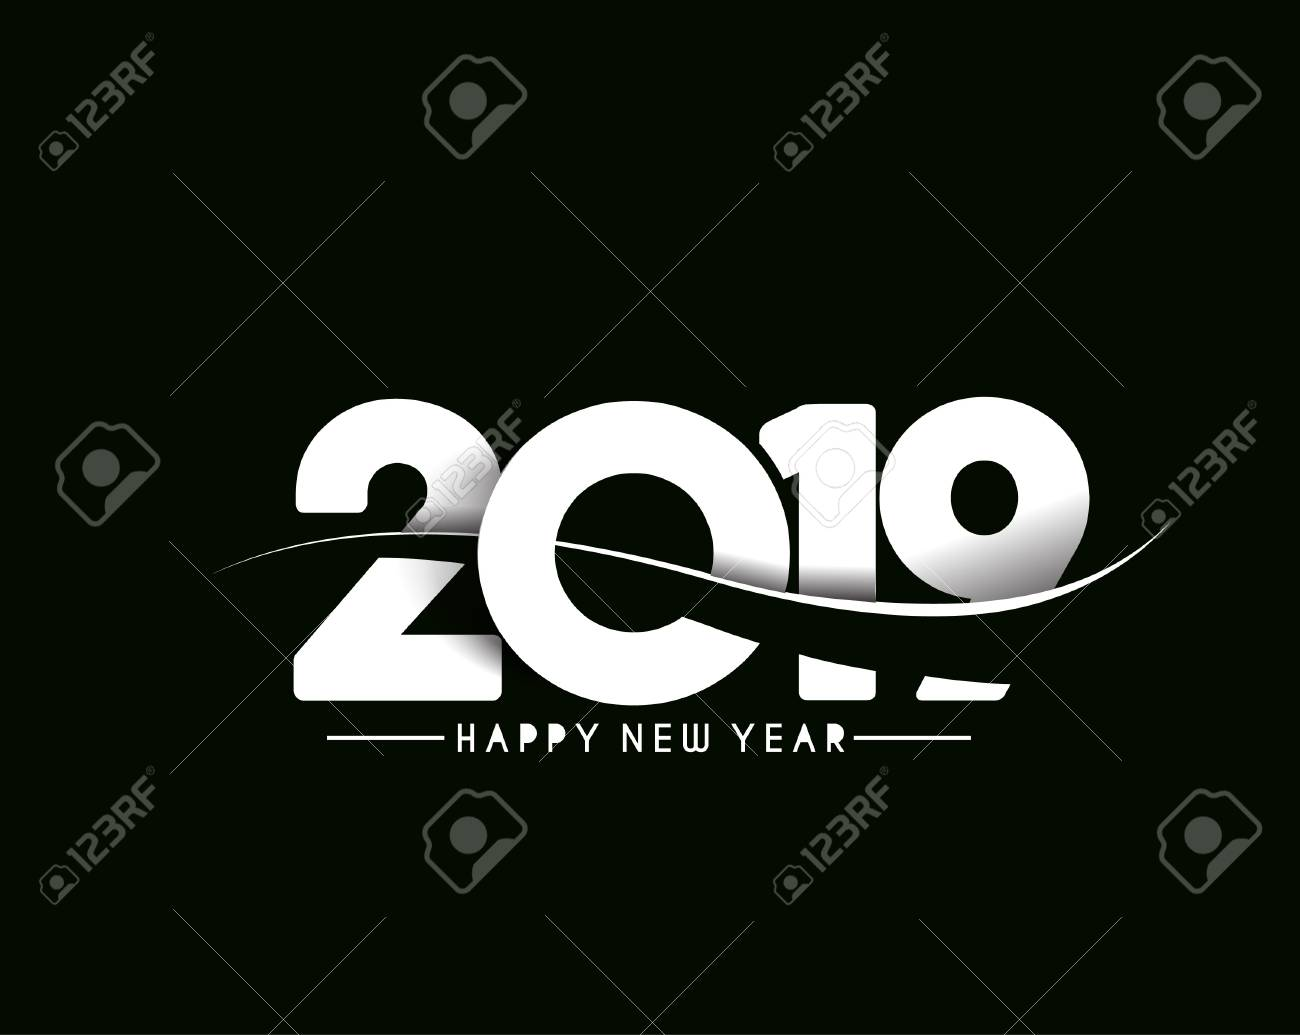 Happy New Year 2019 Text Design Patter, Vector illustration. - 110507313